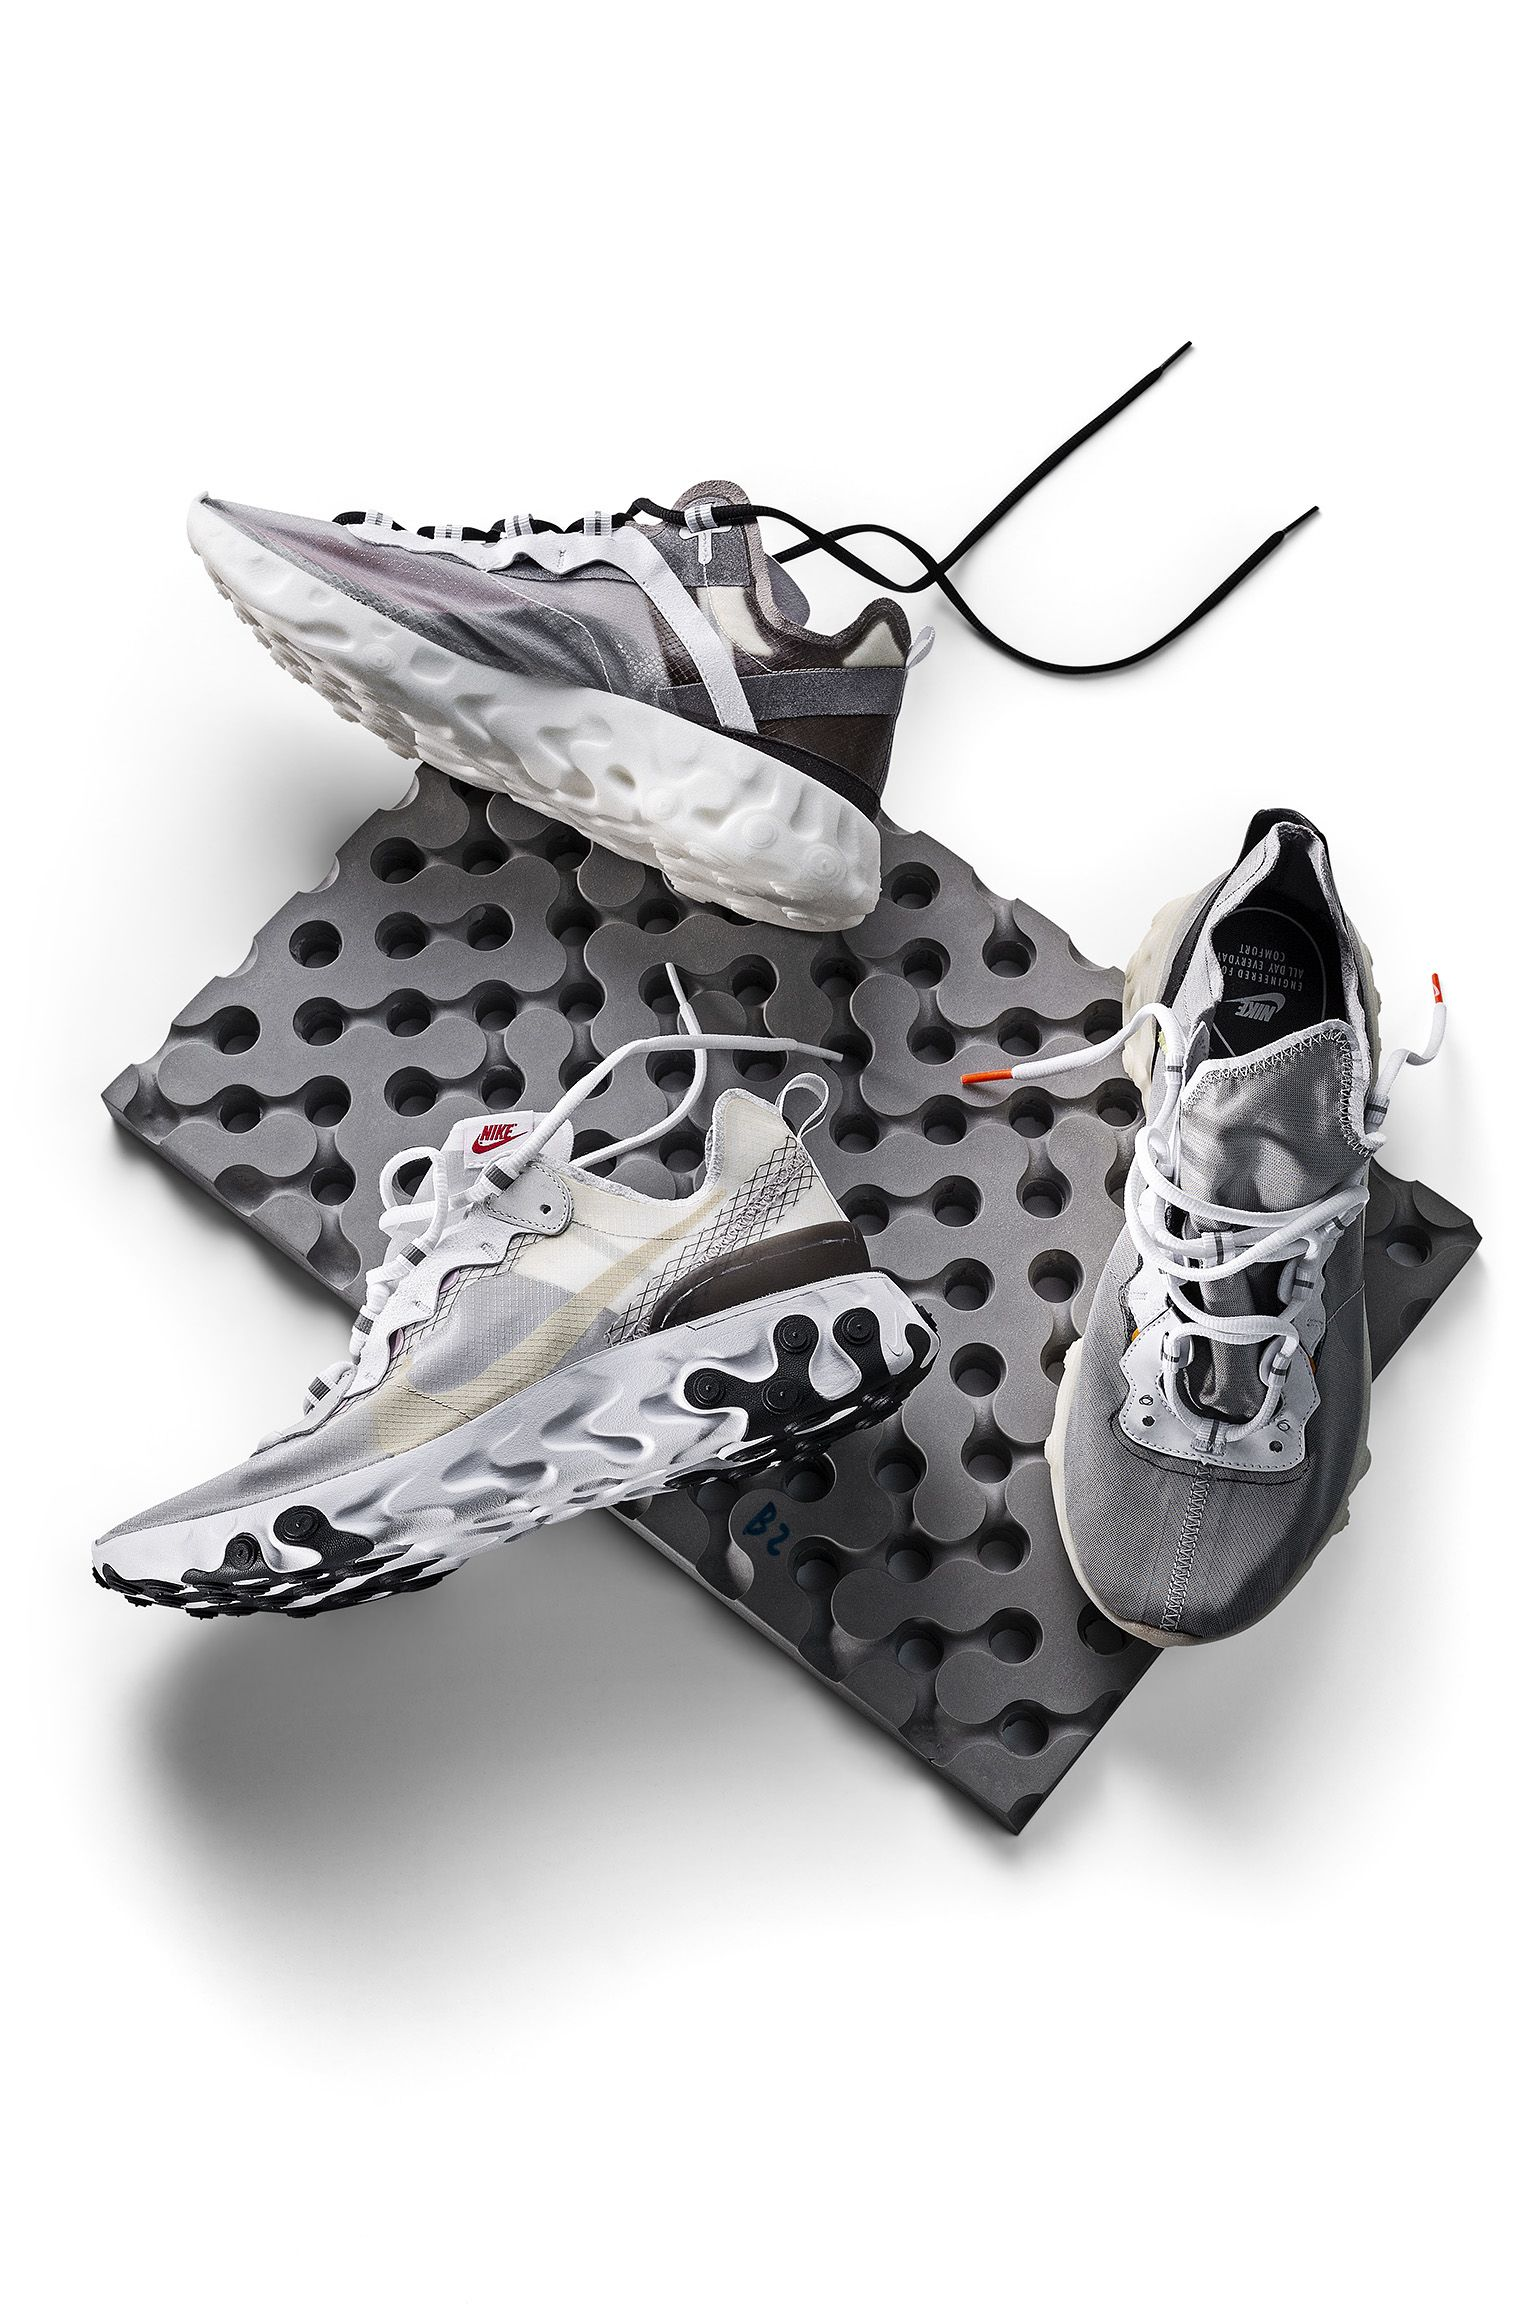 Behind The Design: React Element 87